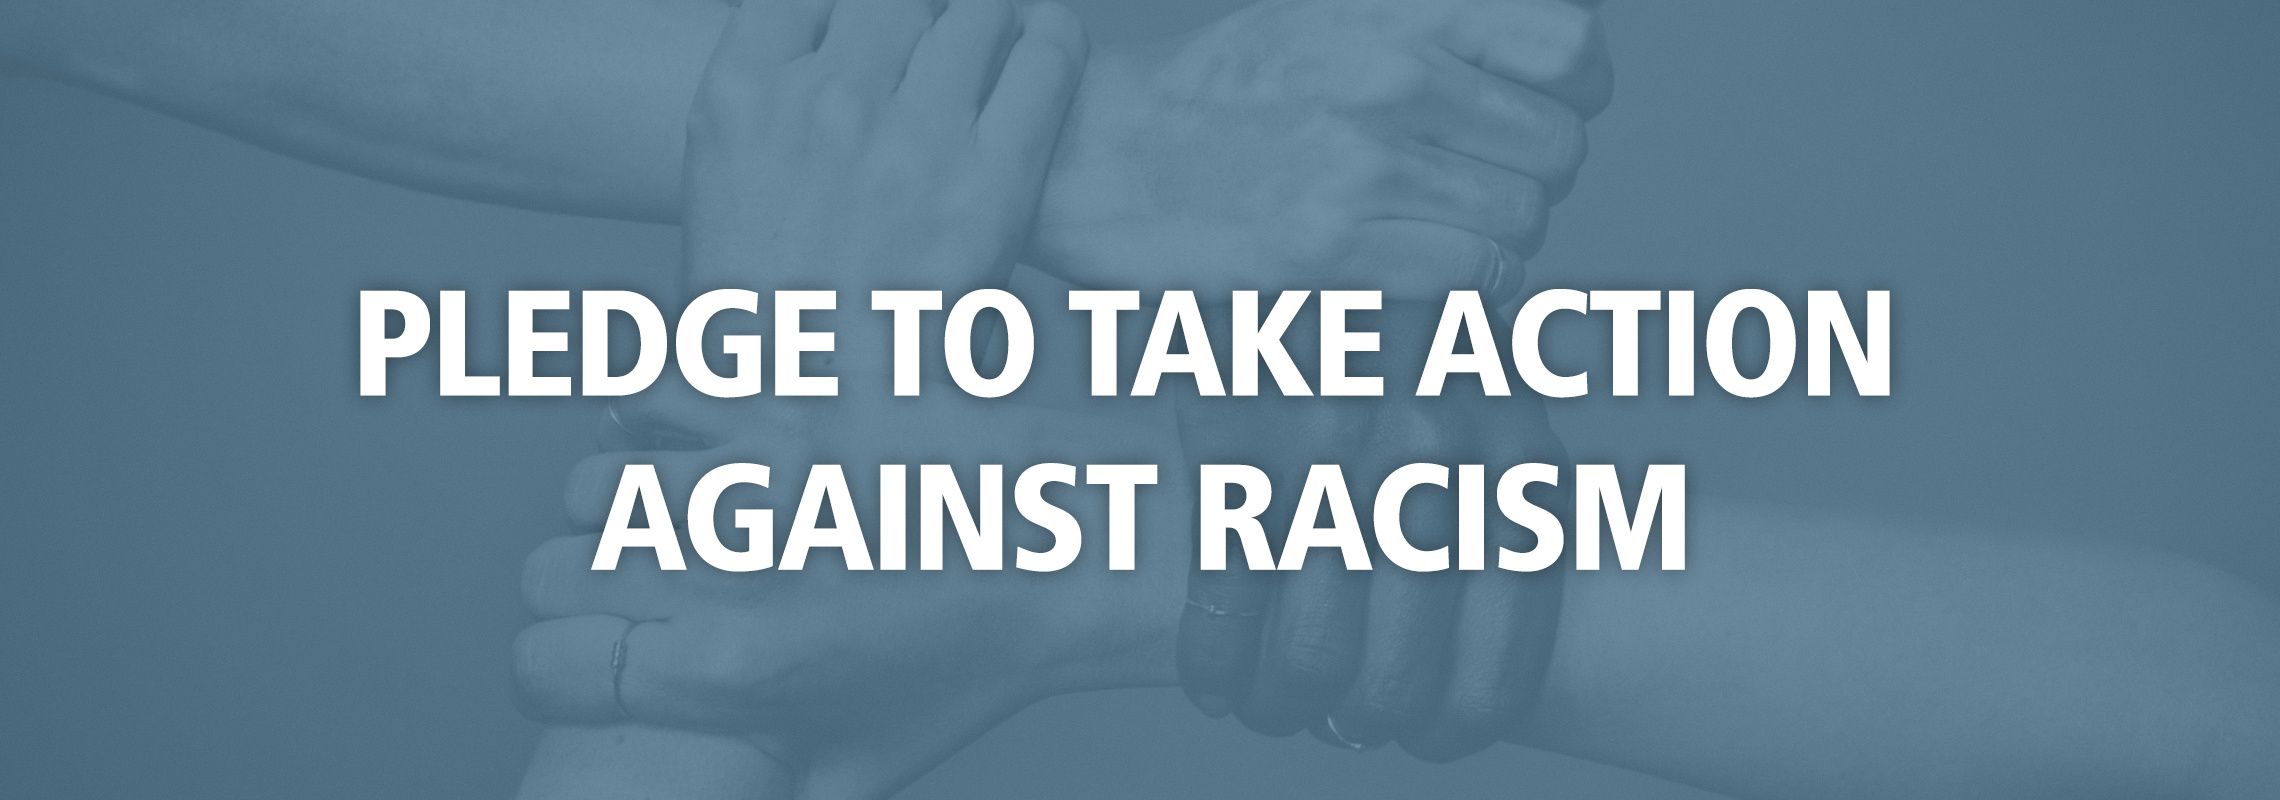 Pledge to Take Action Against Racism